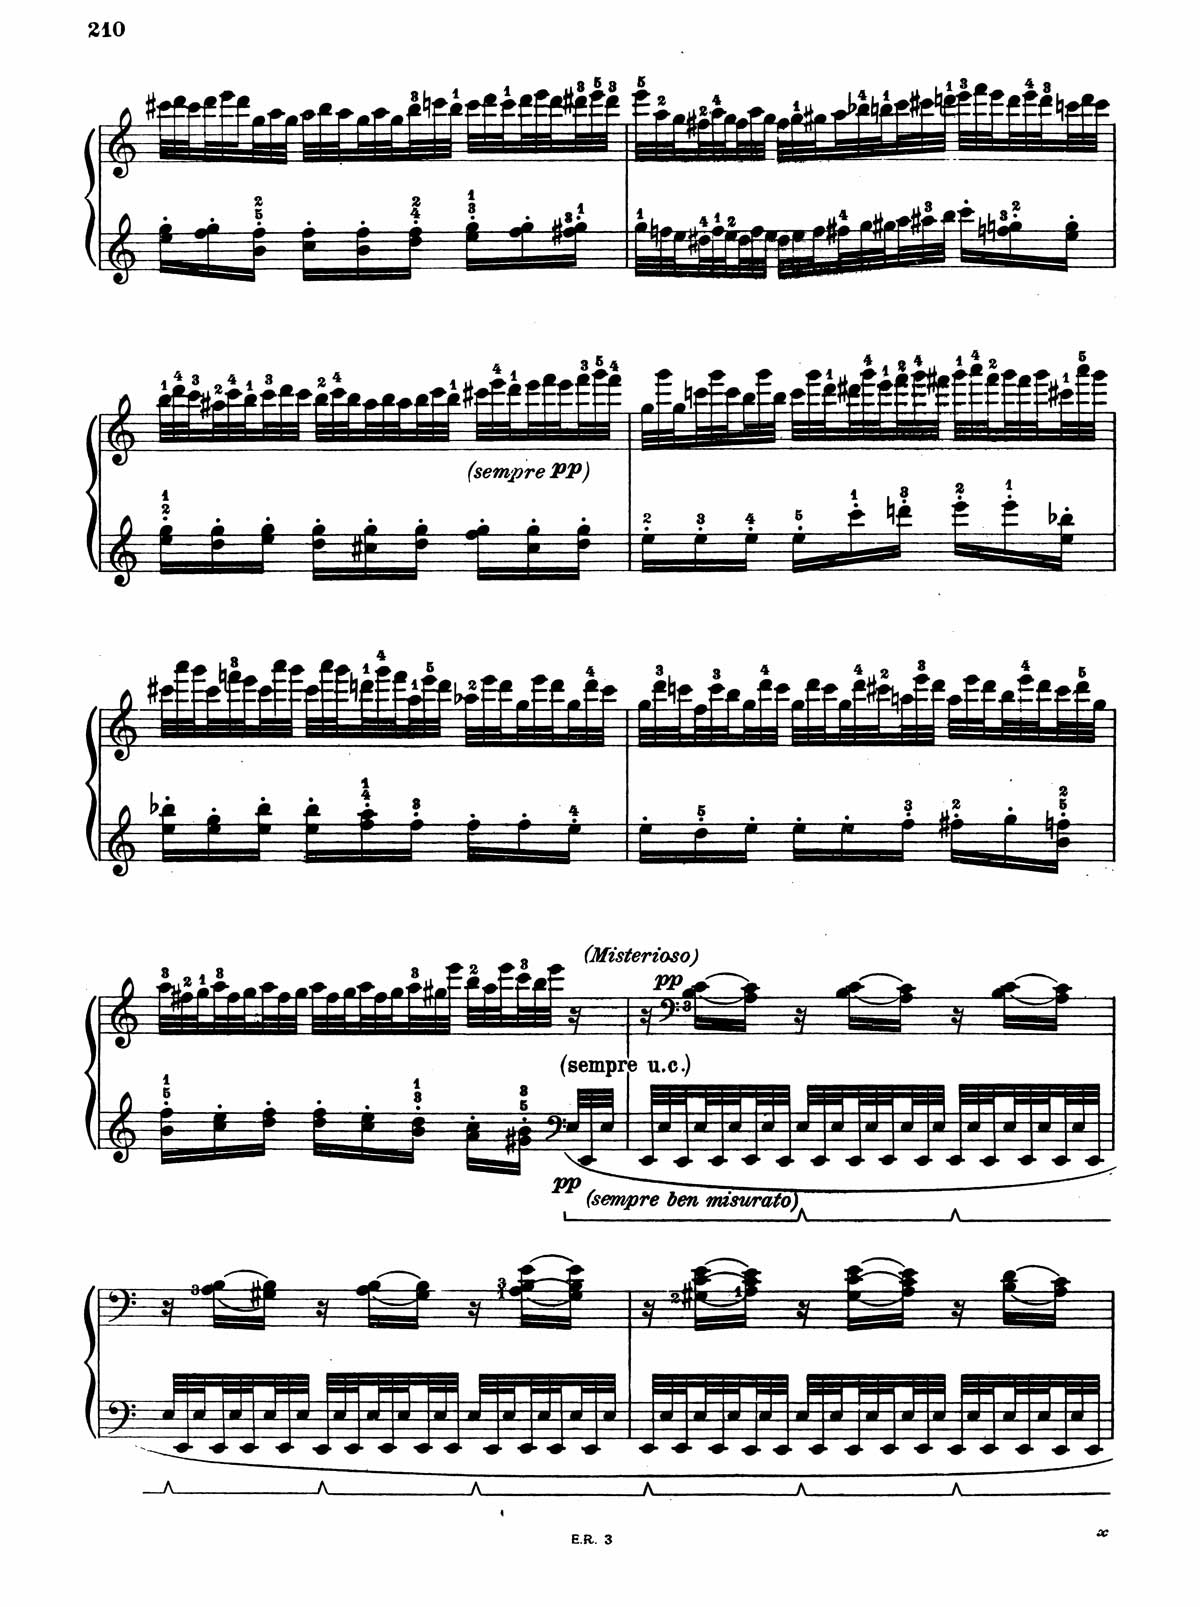 Beethoven Piano Sonata 32-18 sheet music